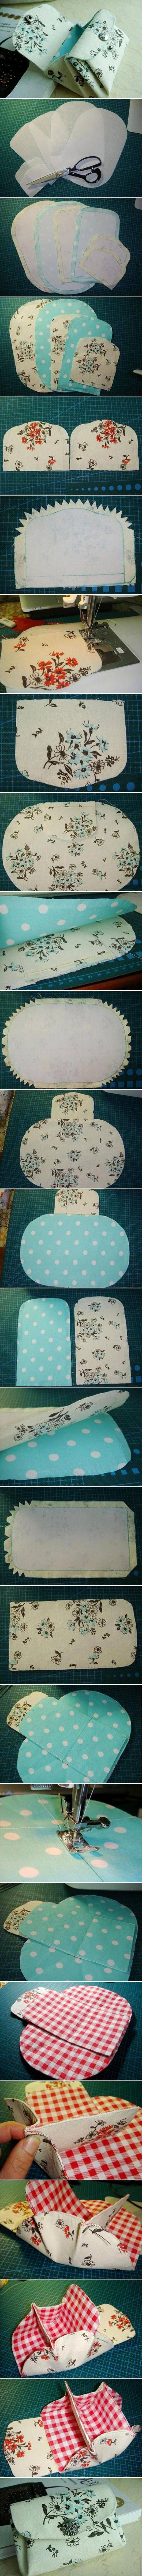 DIY Fabric Folding Purse DIY Projects | UsefulDIY.com Follow us on Facebook ==> https://www.facebook.com/UsefulDiy